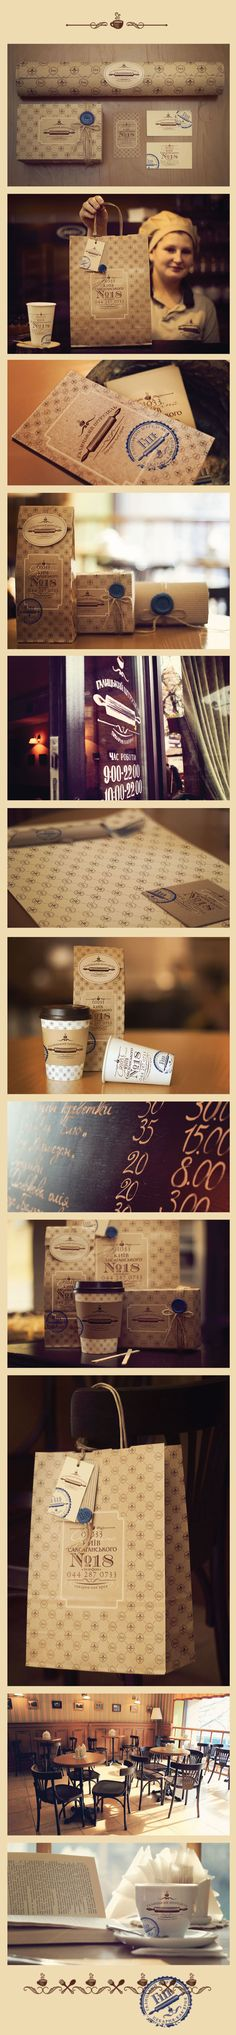 "Cafe-bakery ""Galician strudel"" by Olena Fedorova 